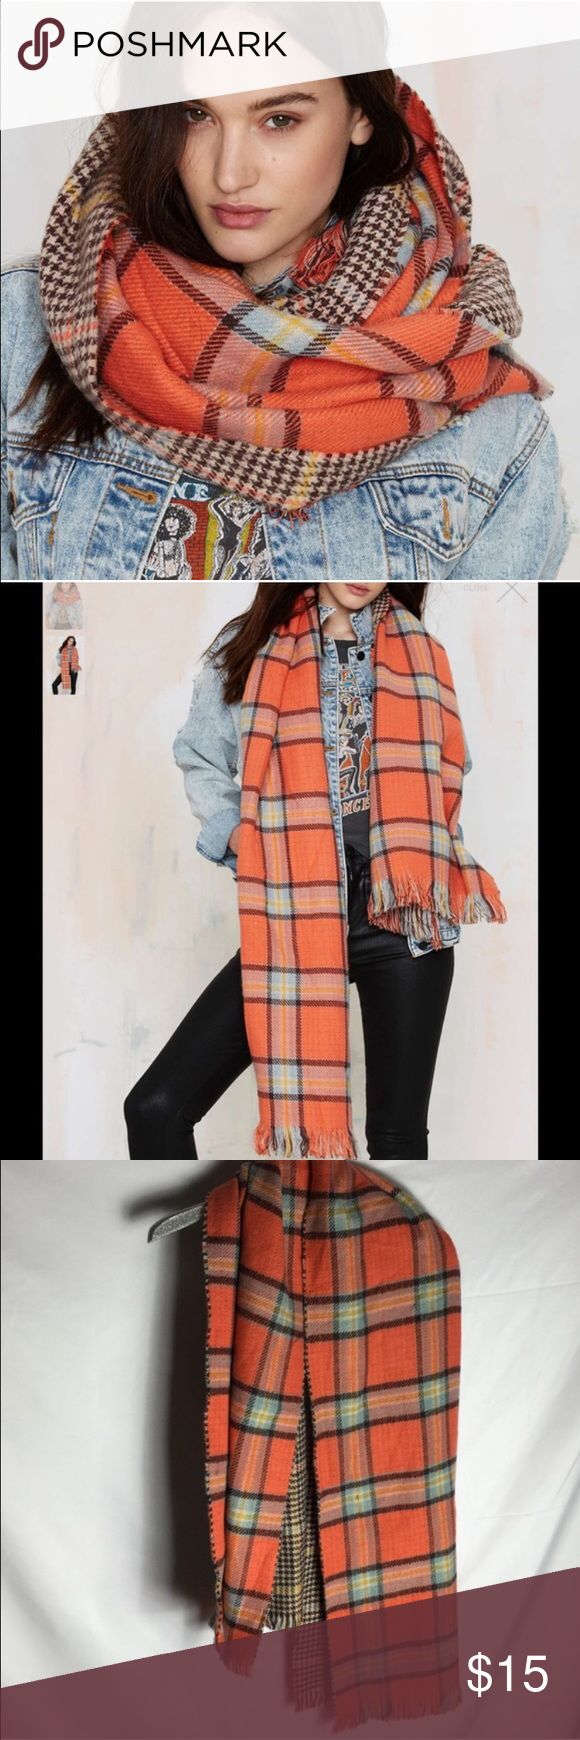 #124 nasty gal Zooey scarf 🐥🔵 cozy Zoey Scarf features an orange, brown, blue, and yellow plaid print on one side, houndstooth print on the other, and blanket silhouette. We love it paired with a denim jacket, jeans, and ankle boots.  *Synthetic Materials  *Imported Nasty Gal Accessories Scarves & Wraps